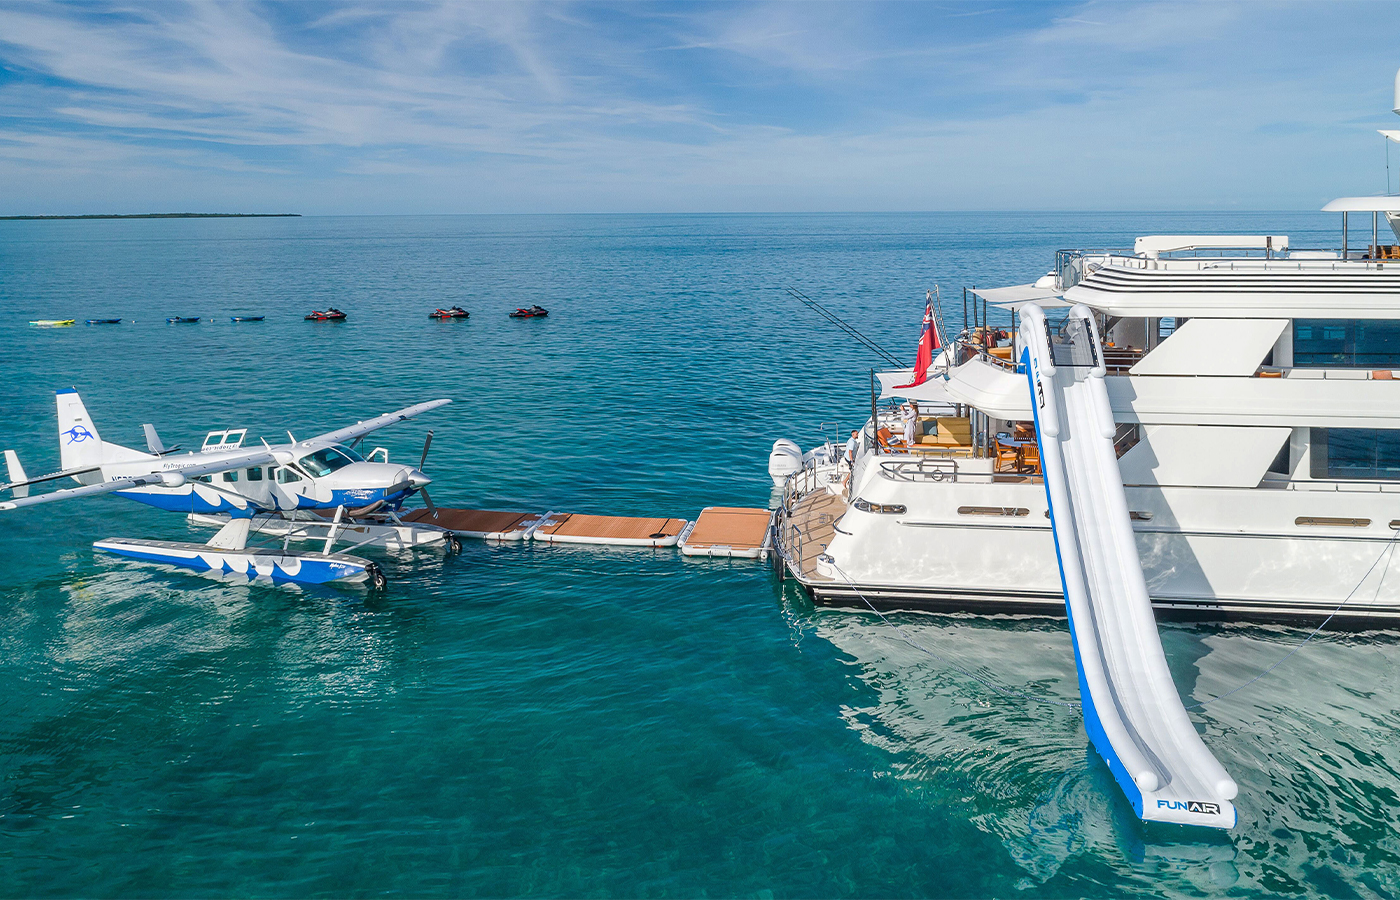 Tropic Ocean Airways Offers A First Class Seaplane Experience For Yacht Charter Guests